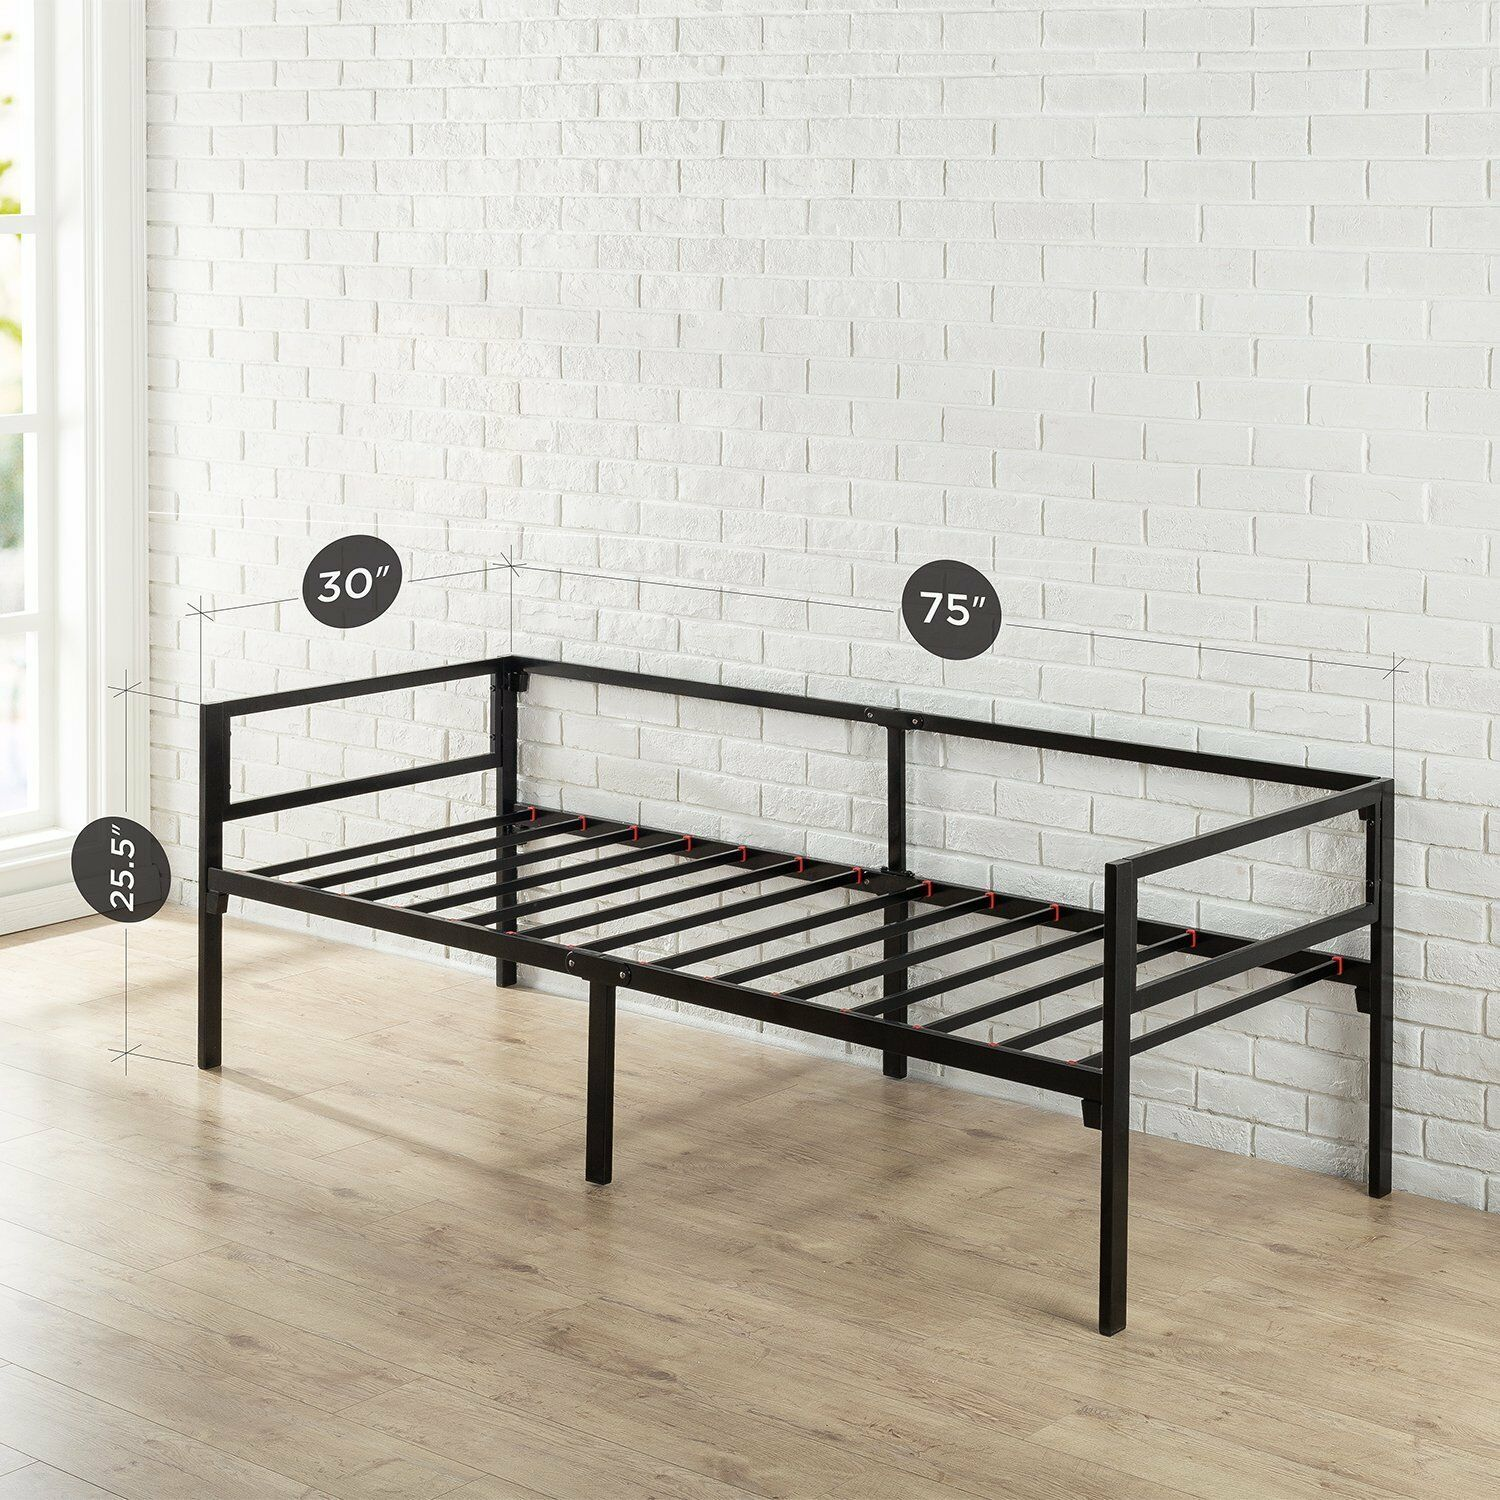 Brand new  lowest price. Zinus Quick Lock 30 Inch Wide Day Bed Frame and Foam Mattress Set